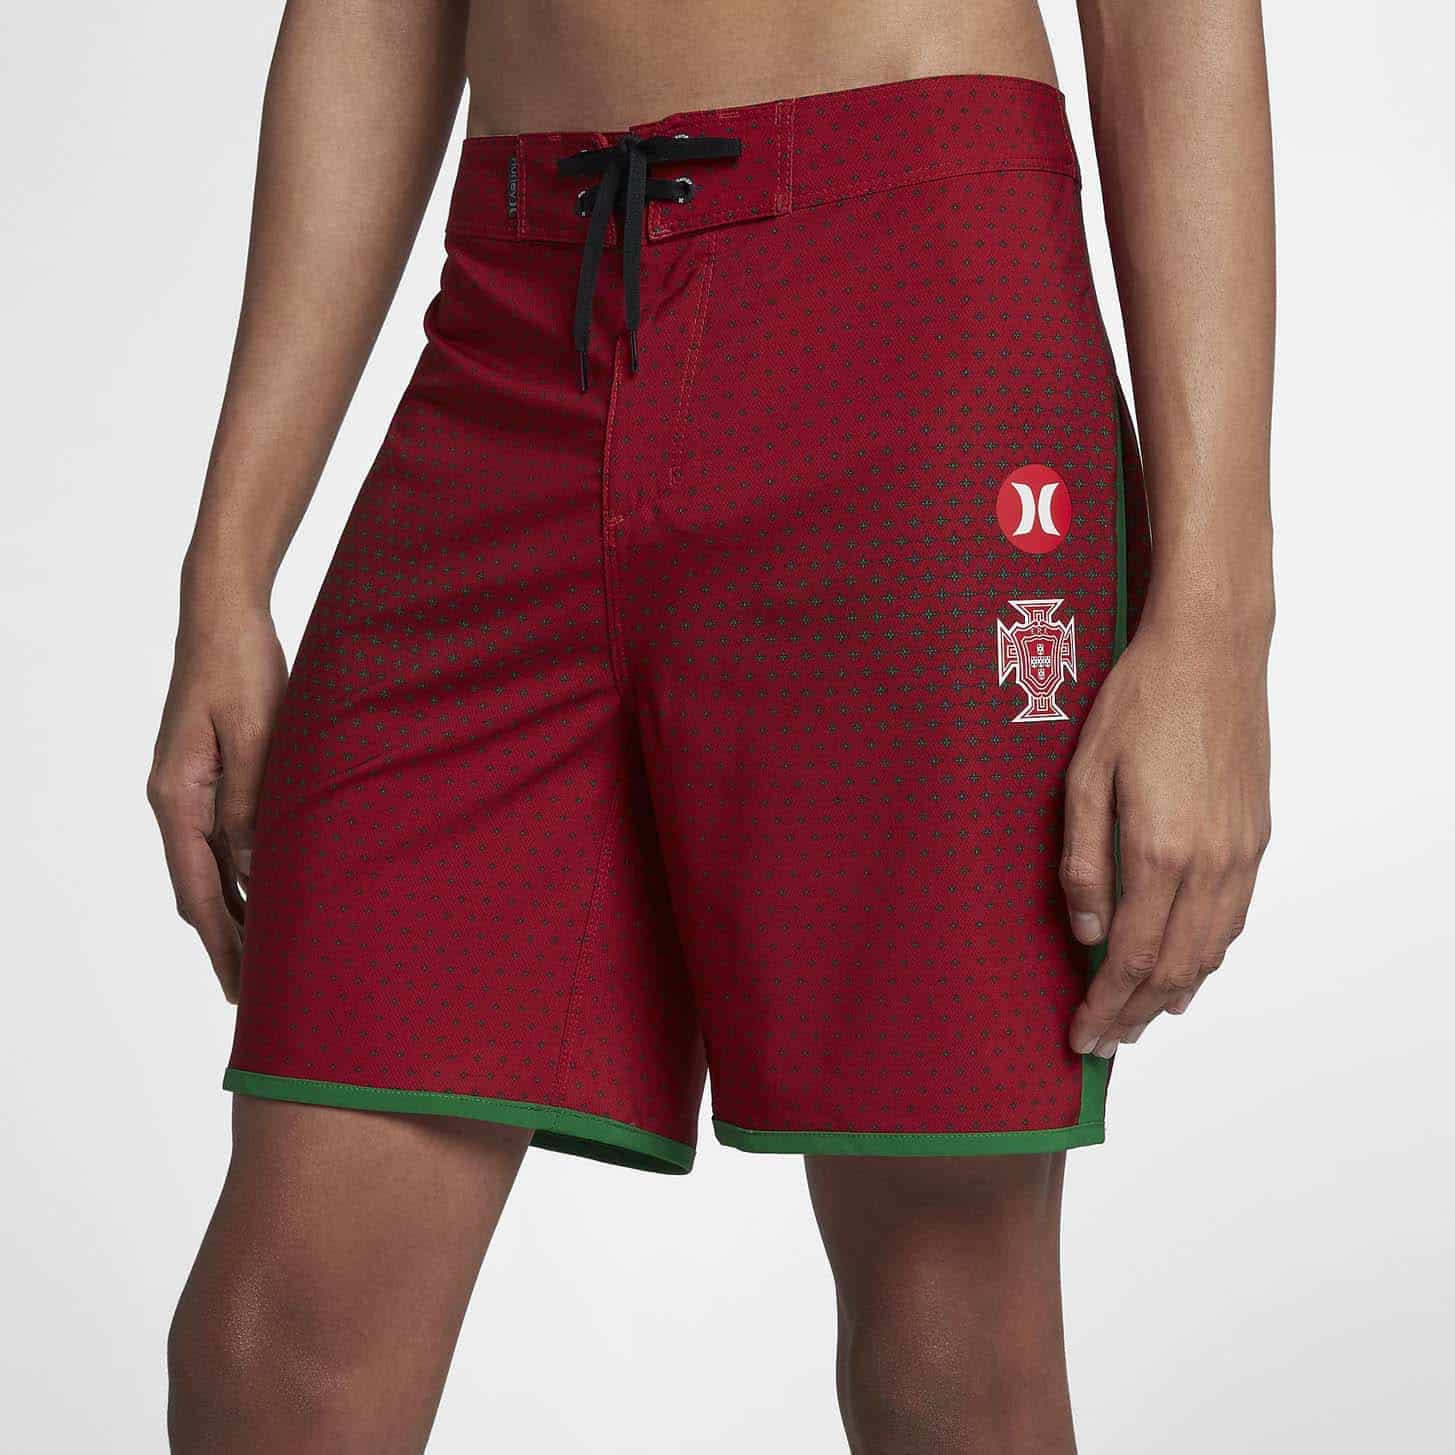 Sportstyle-hurley-board-short-sélections-nationales-coupe-monde-2018-mai-2018-3